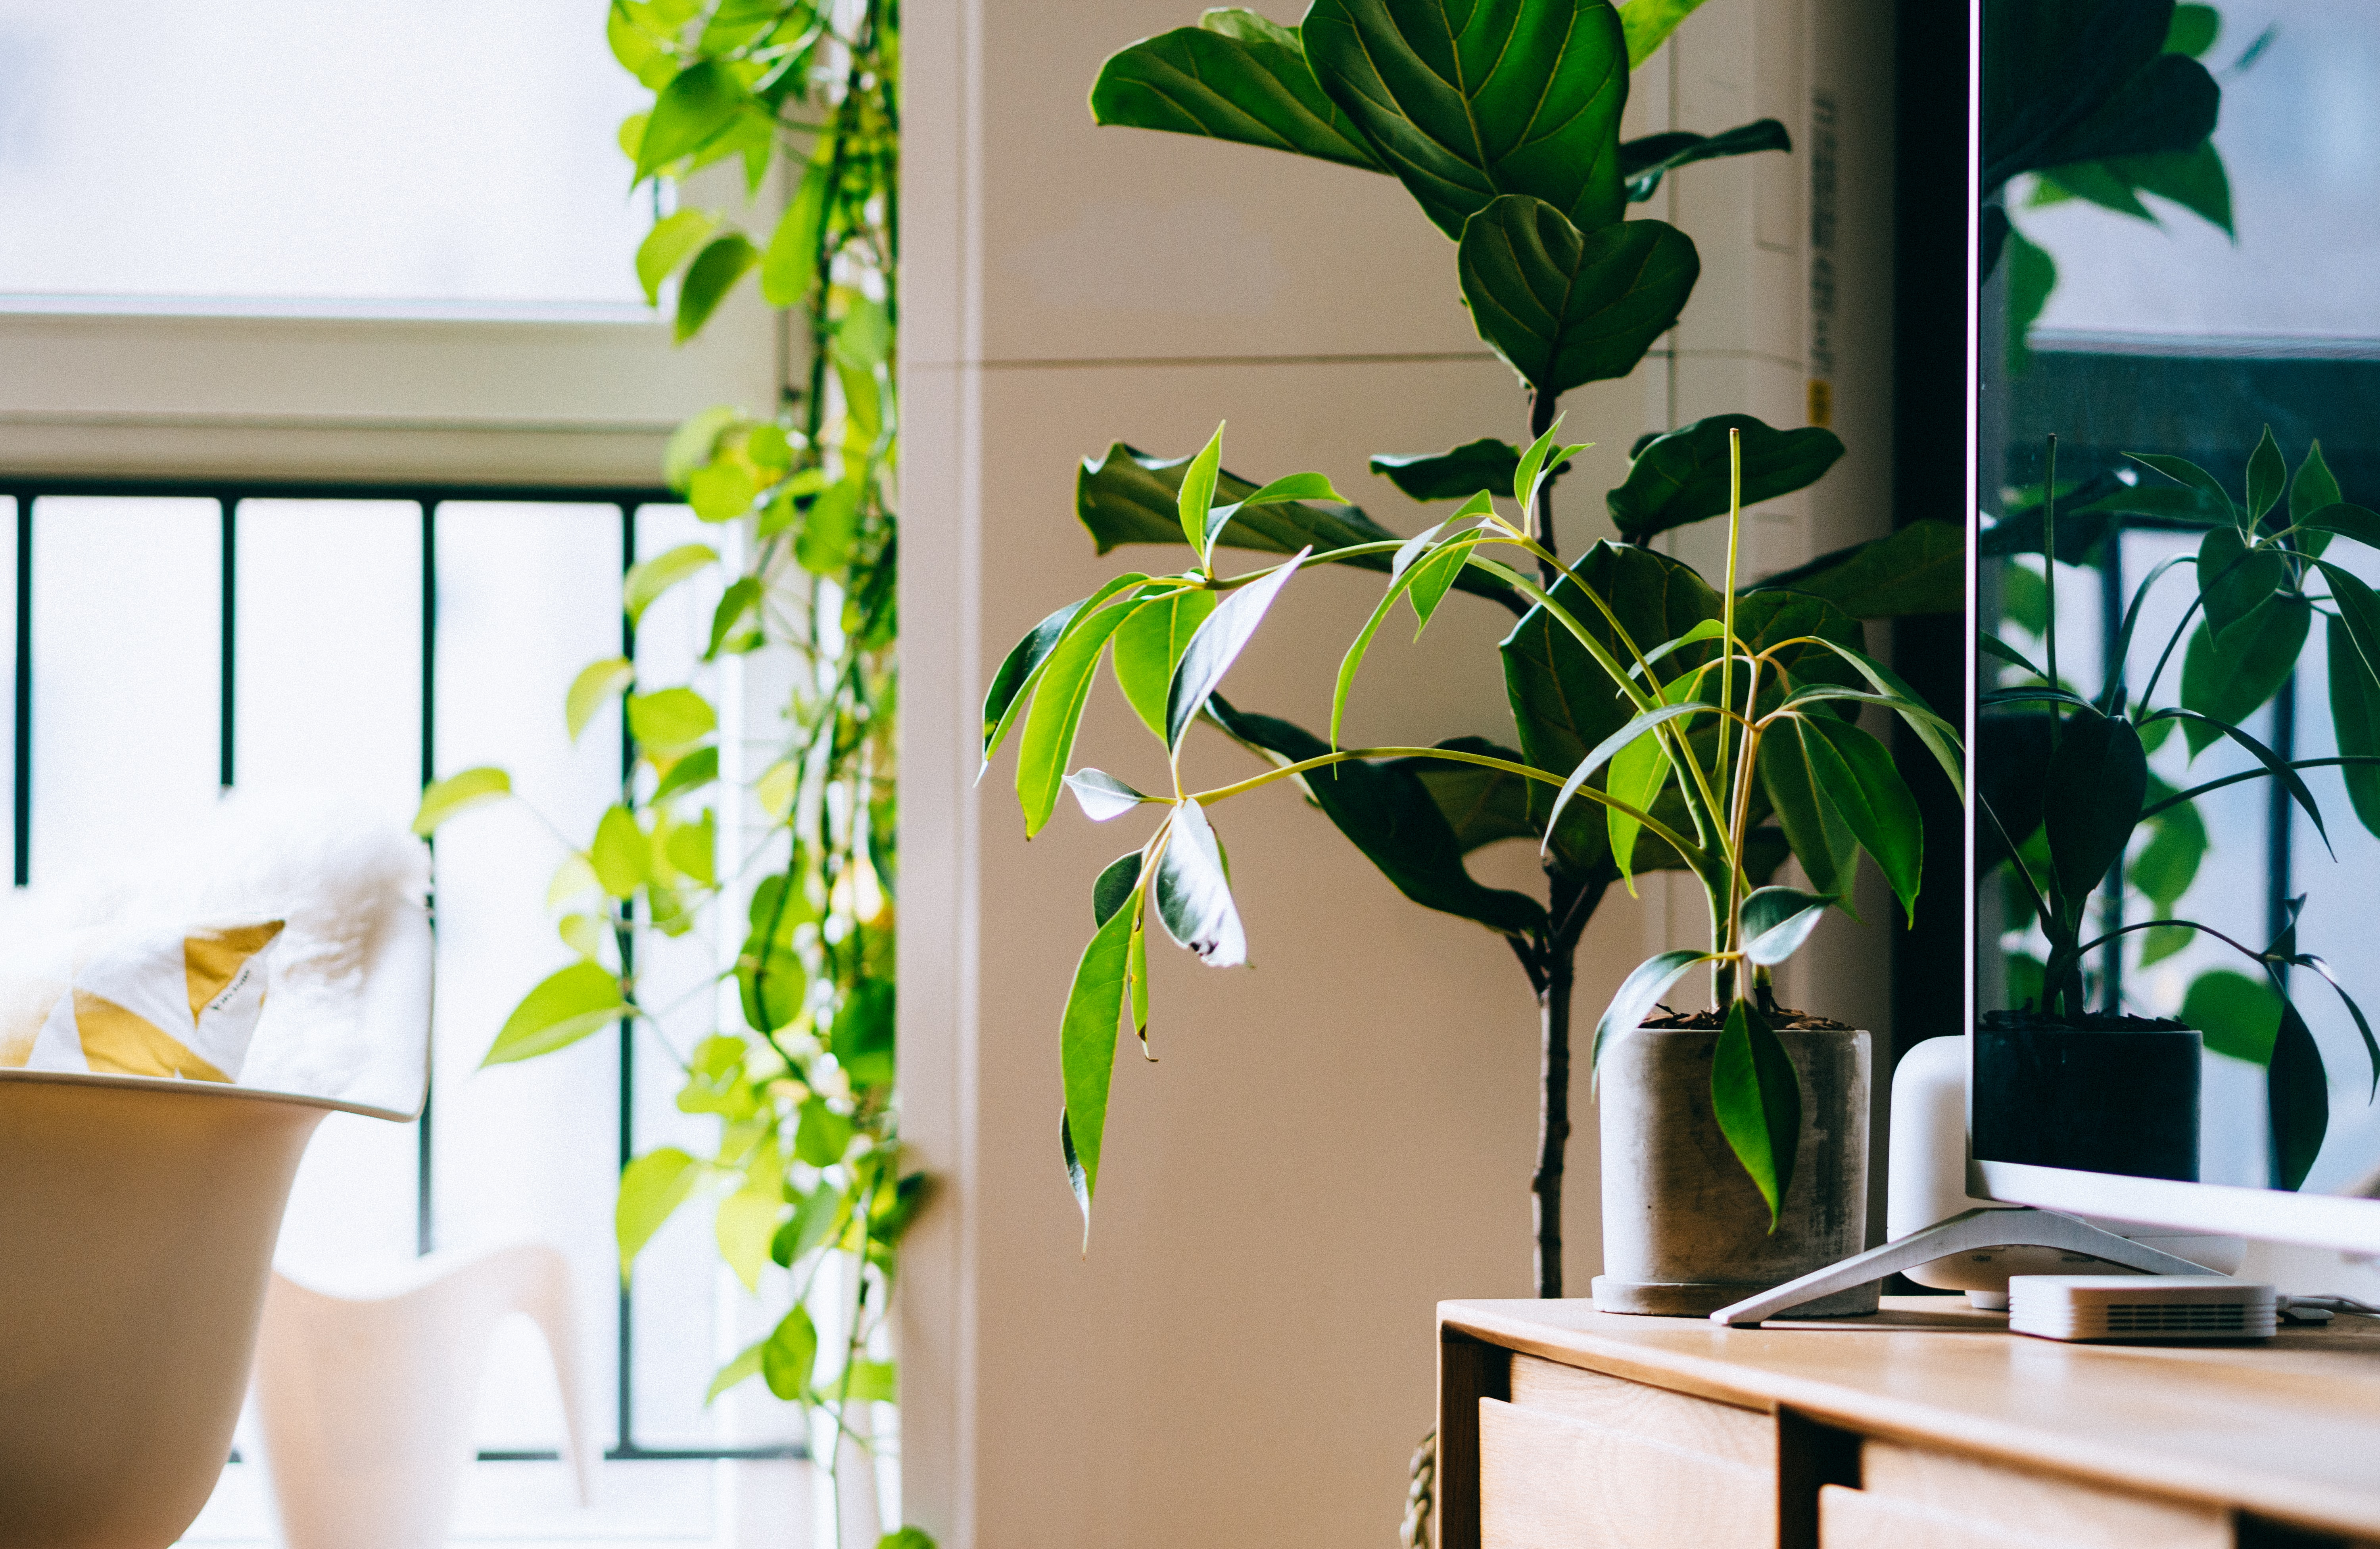 green potted plant beside flat screen TV